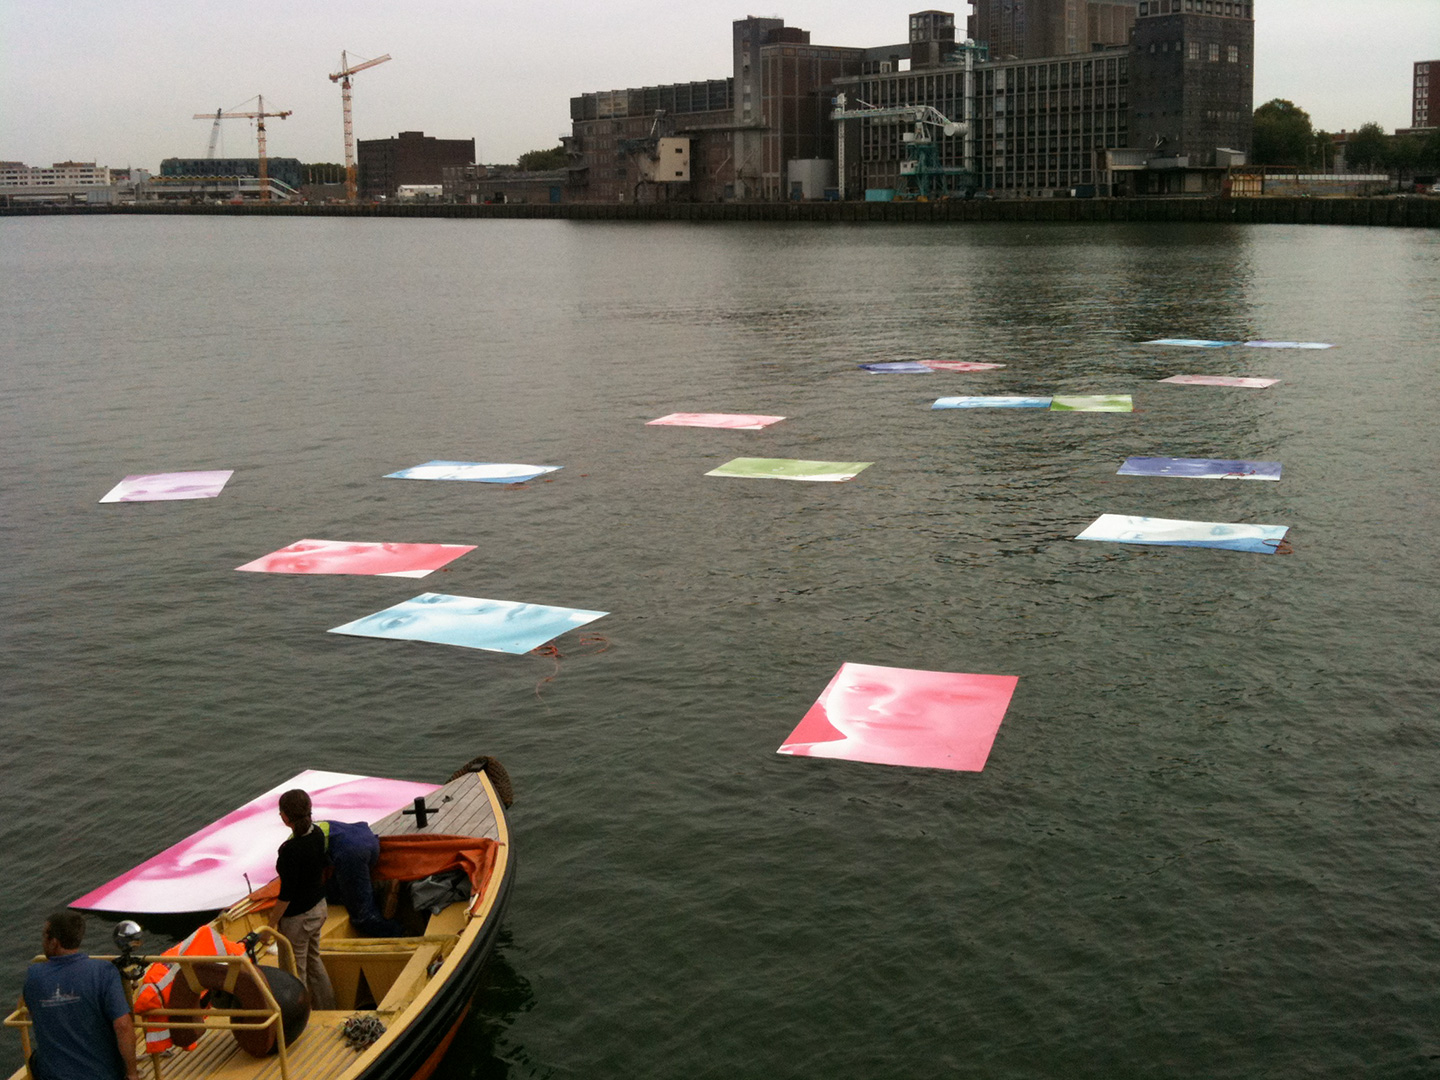 Guillermina De Gennaro, Volver sin Volver, site specific installation, print on floating panels, 300x200 each, variable dimension, port of Rotterdam, 2012.